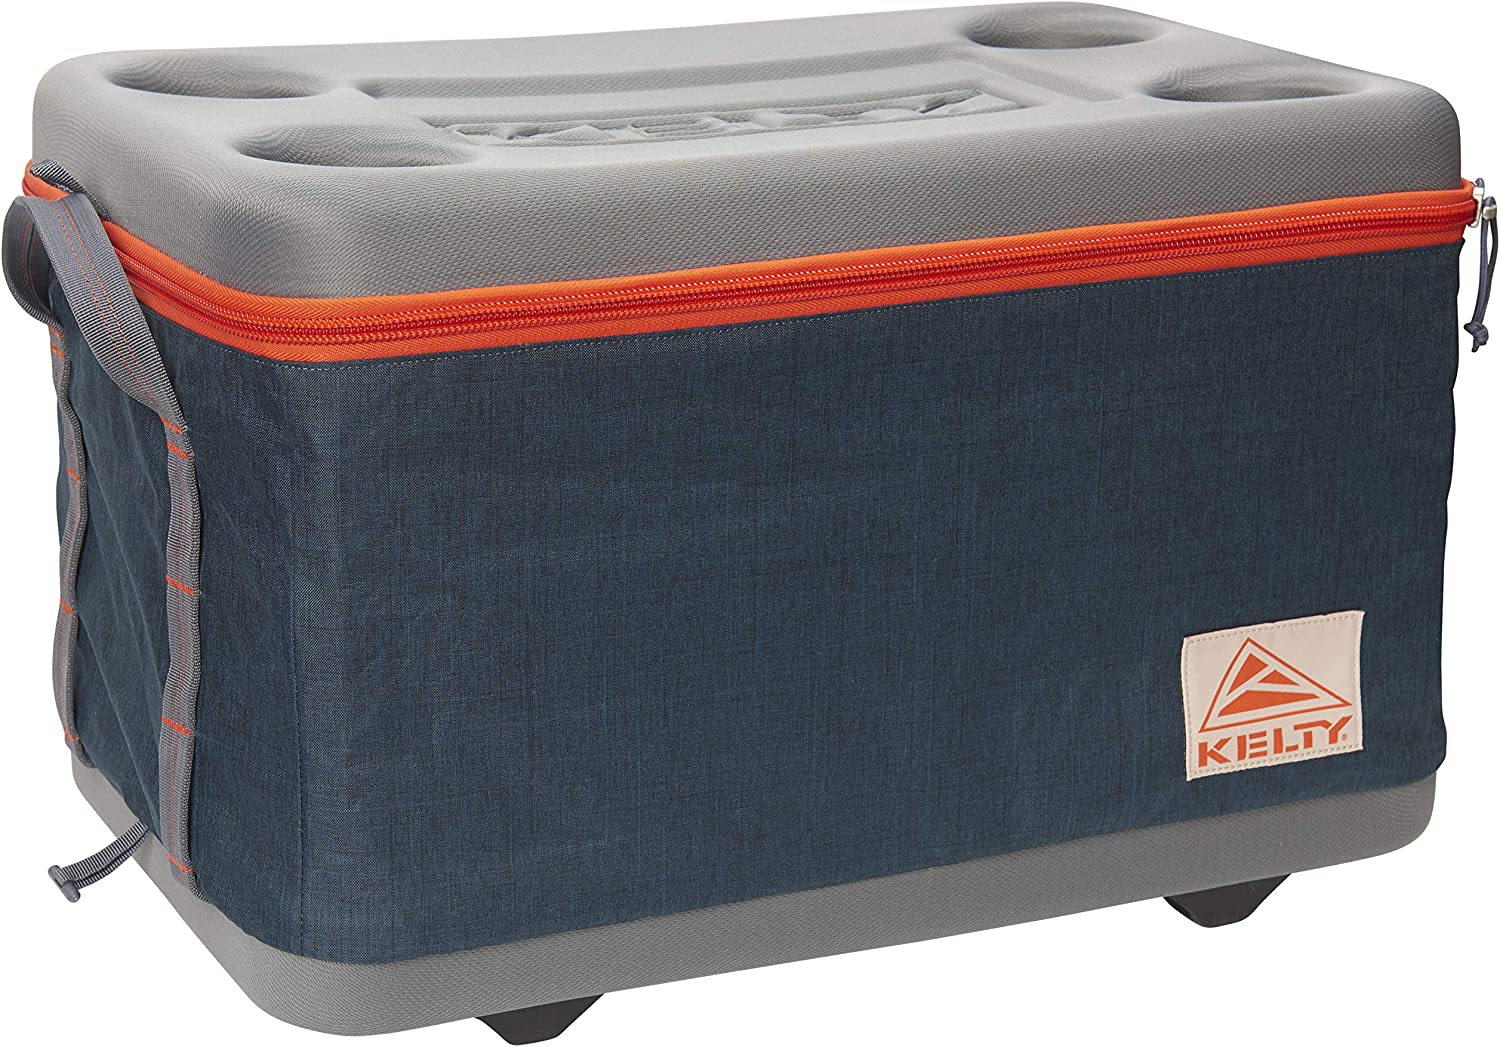 Kelty Folding Cooler - Collapsible, Portable Cooler with Integrated Cup Holders, Heavy Duty Handles, Removable Lining